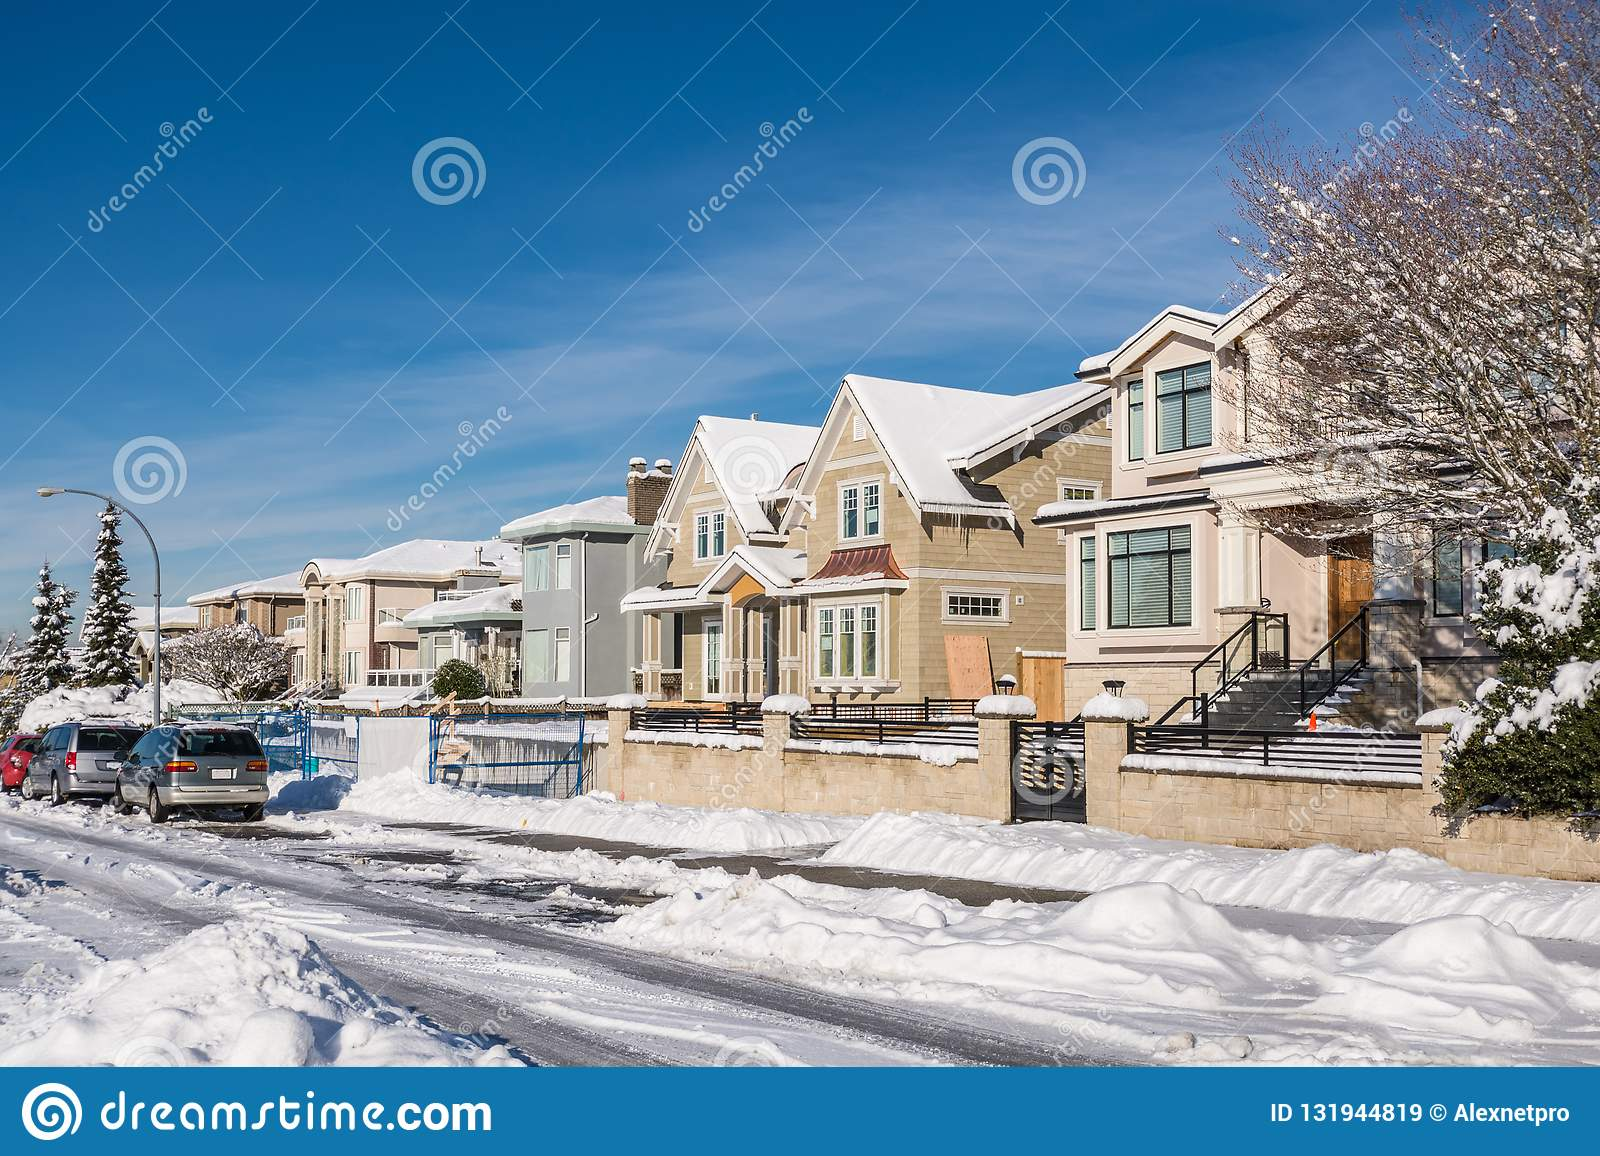 Street of brand new luxury houses on blue sky background in winter